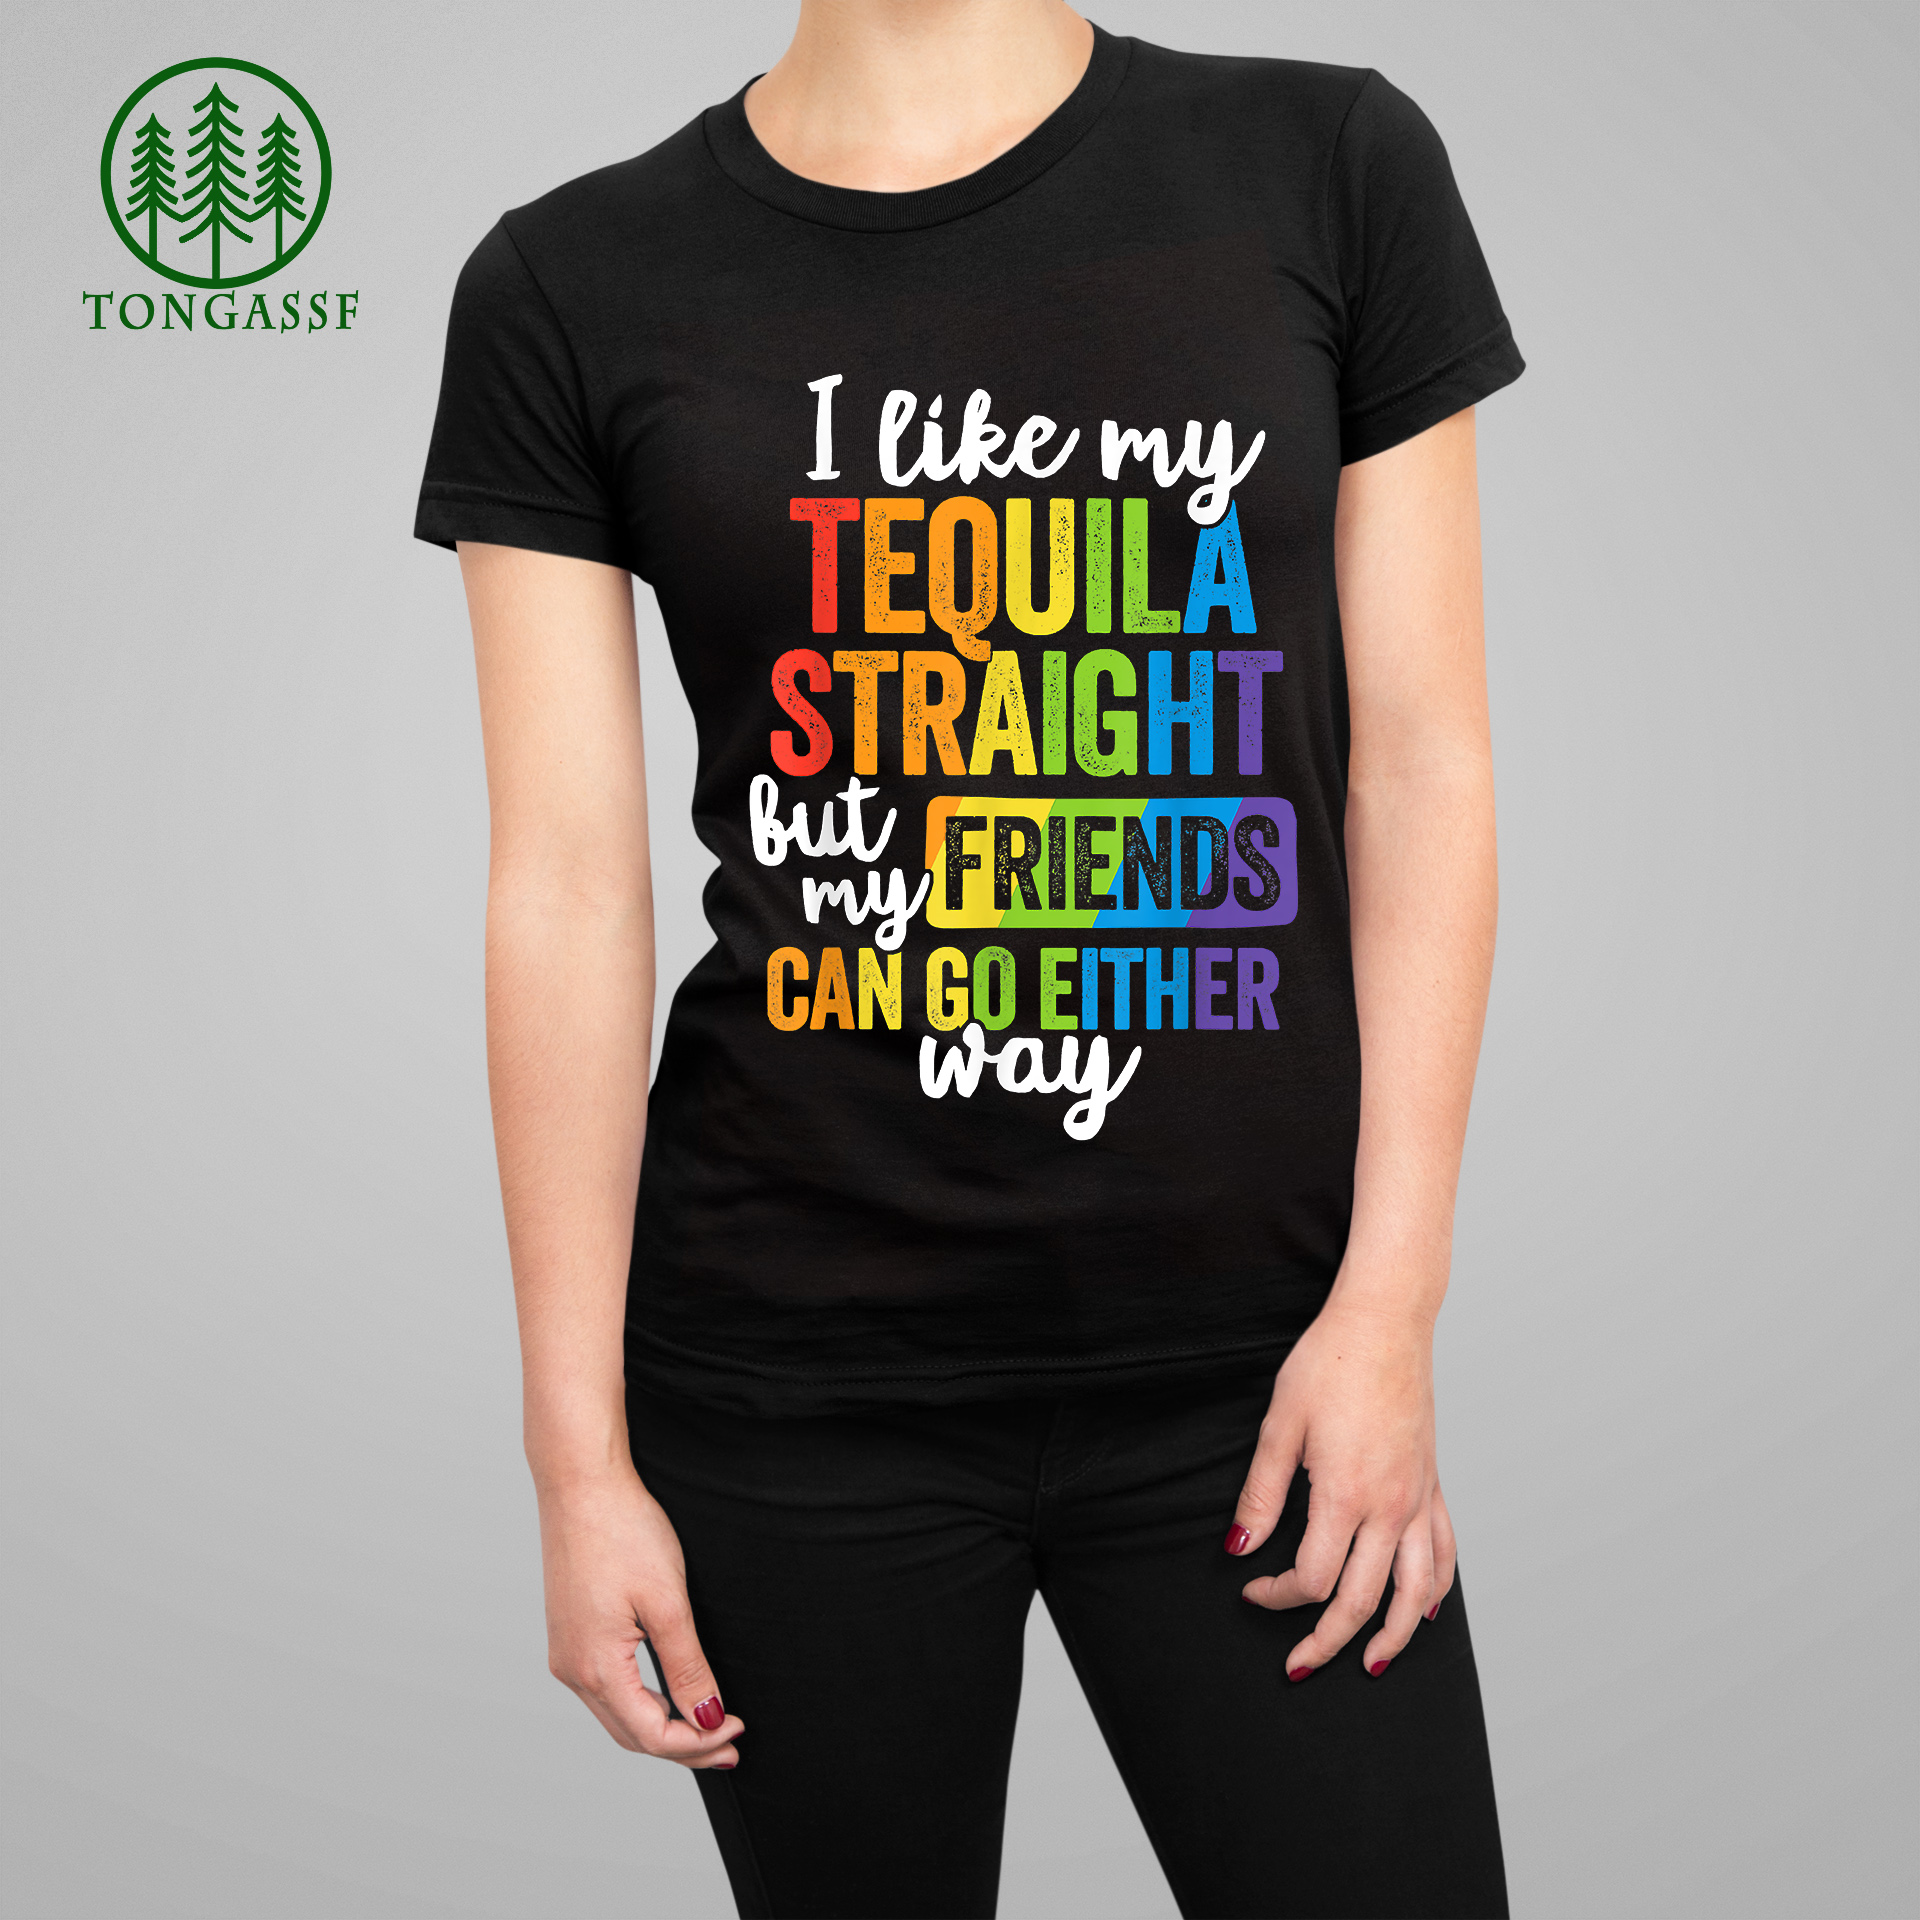 Funny LGBT Ally Gift Tequila Straight Friends Go Either Way T-Shirt